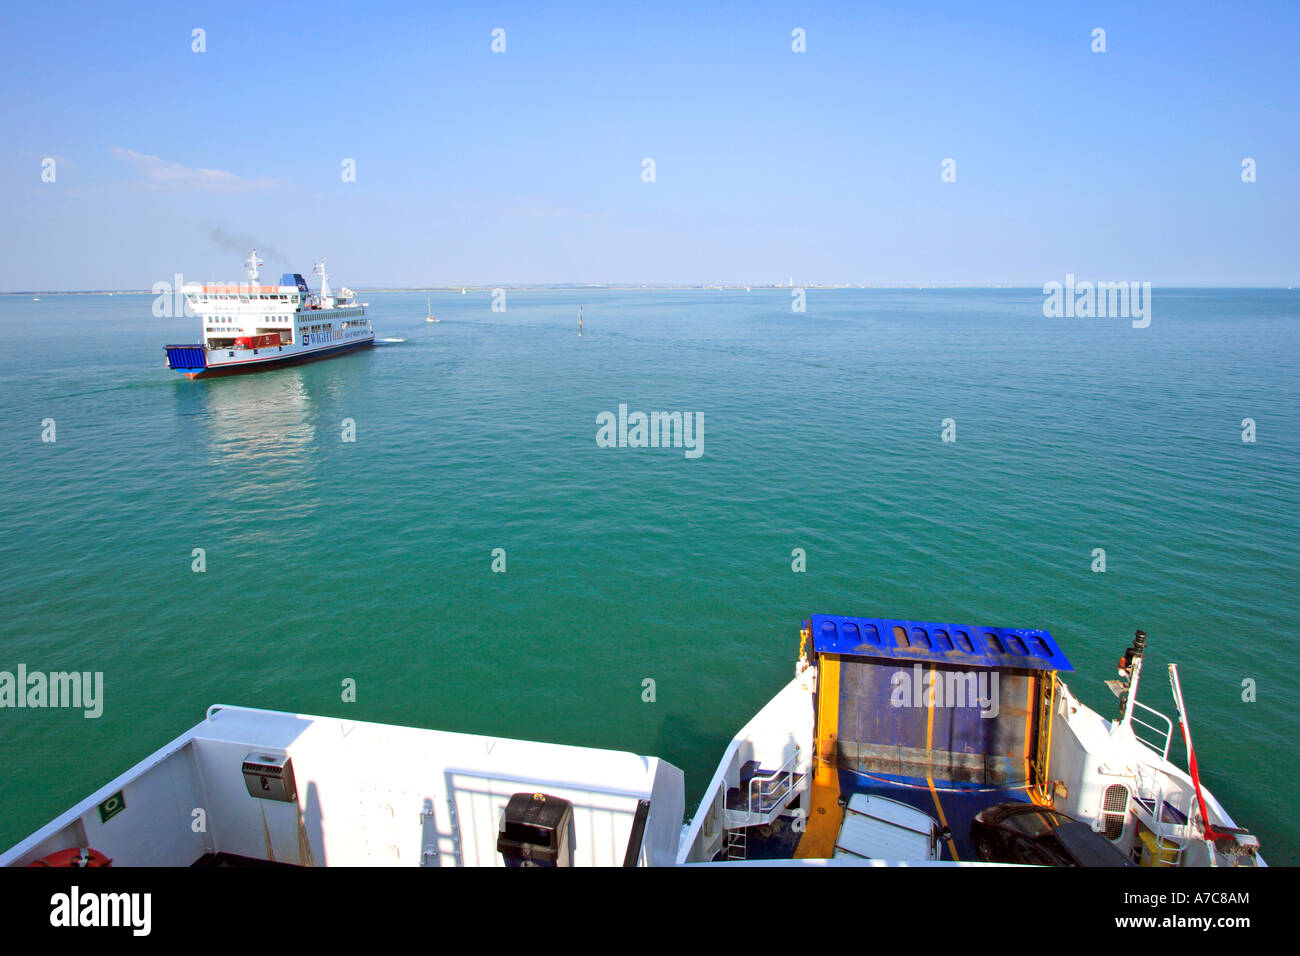 View from Car Ferry crossing British Solent waterway on summer's day Stock Photo